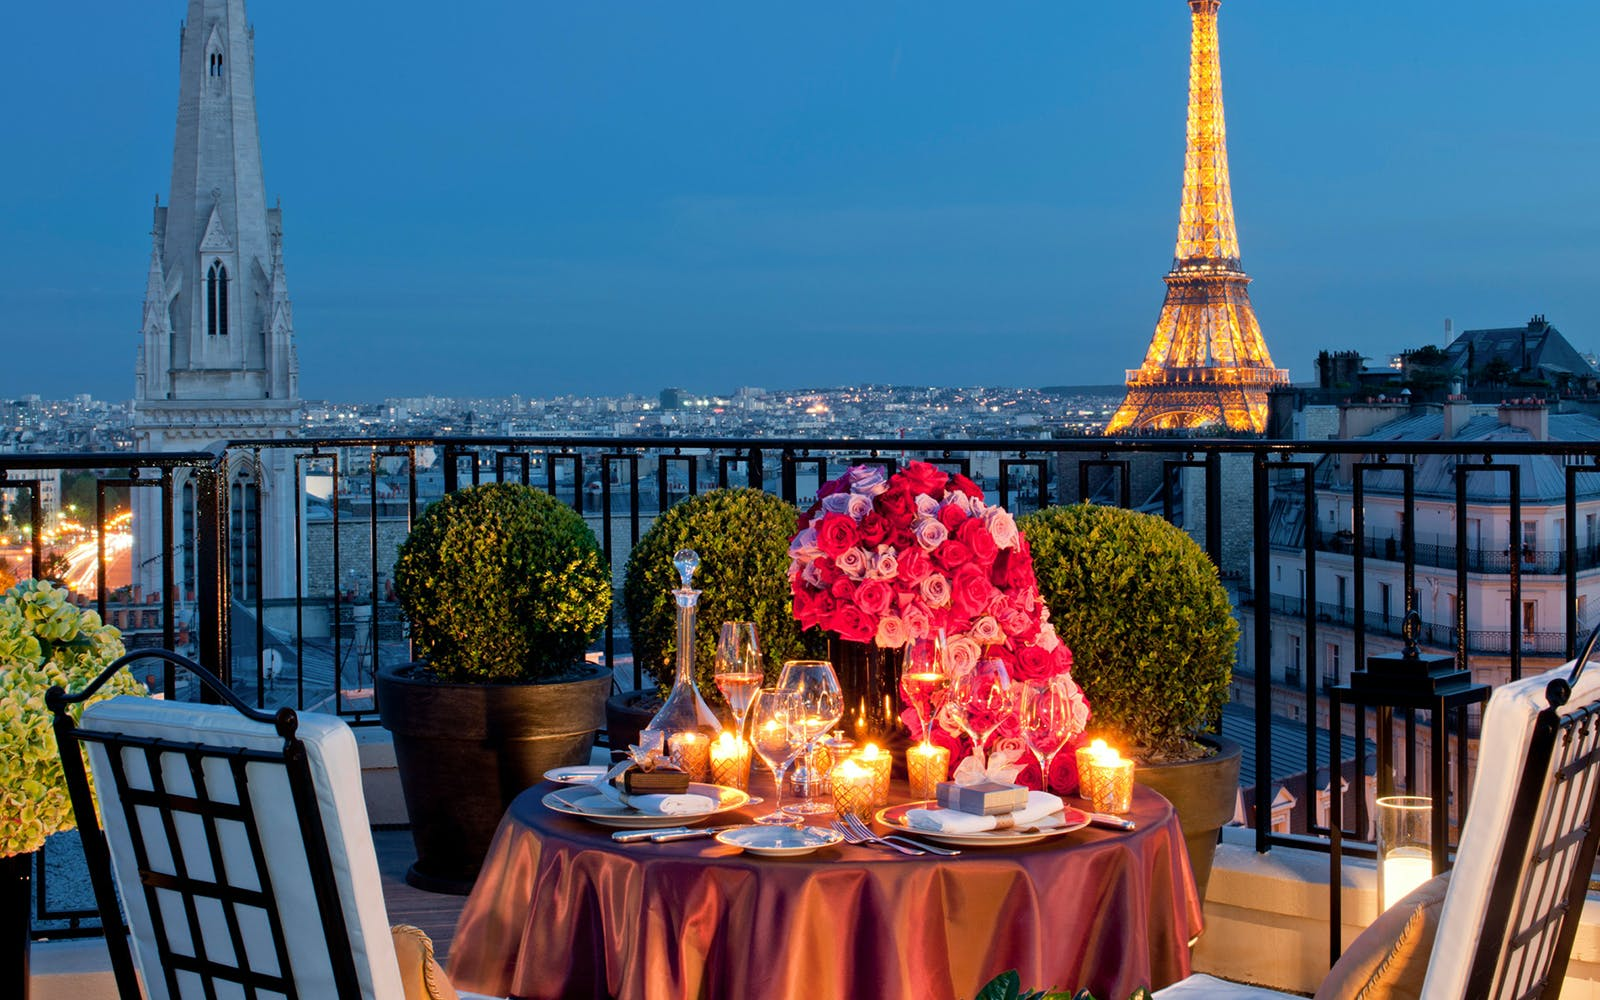 Meal at the Eiffel